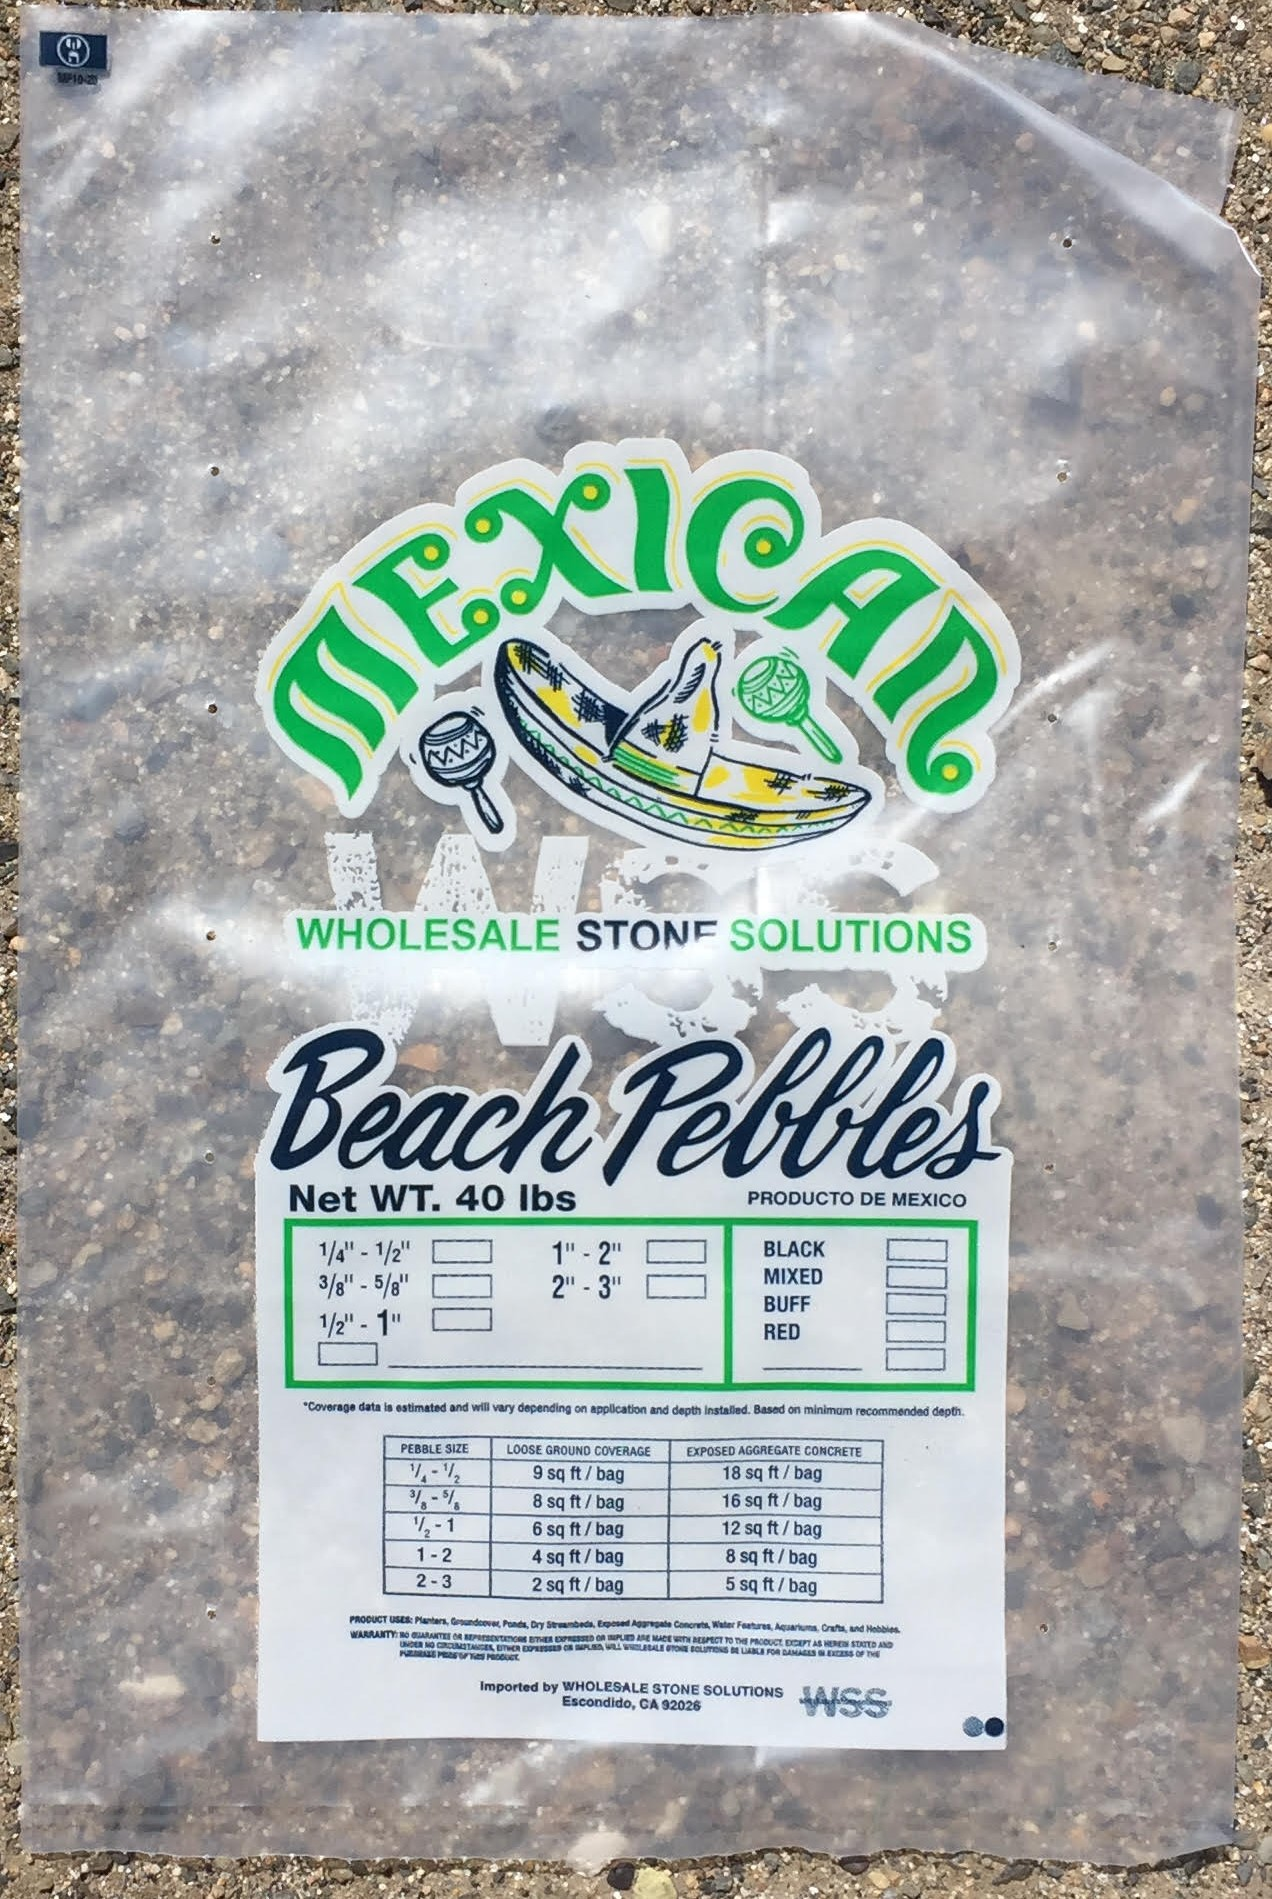 Did you know WSS now offers private labeled bags for our Mexican Beach Pebble products!!